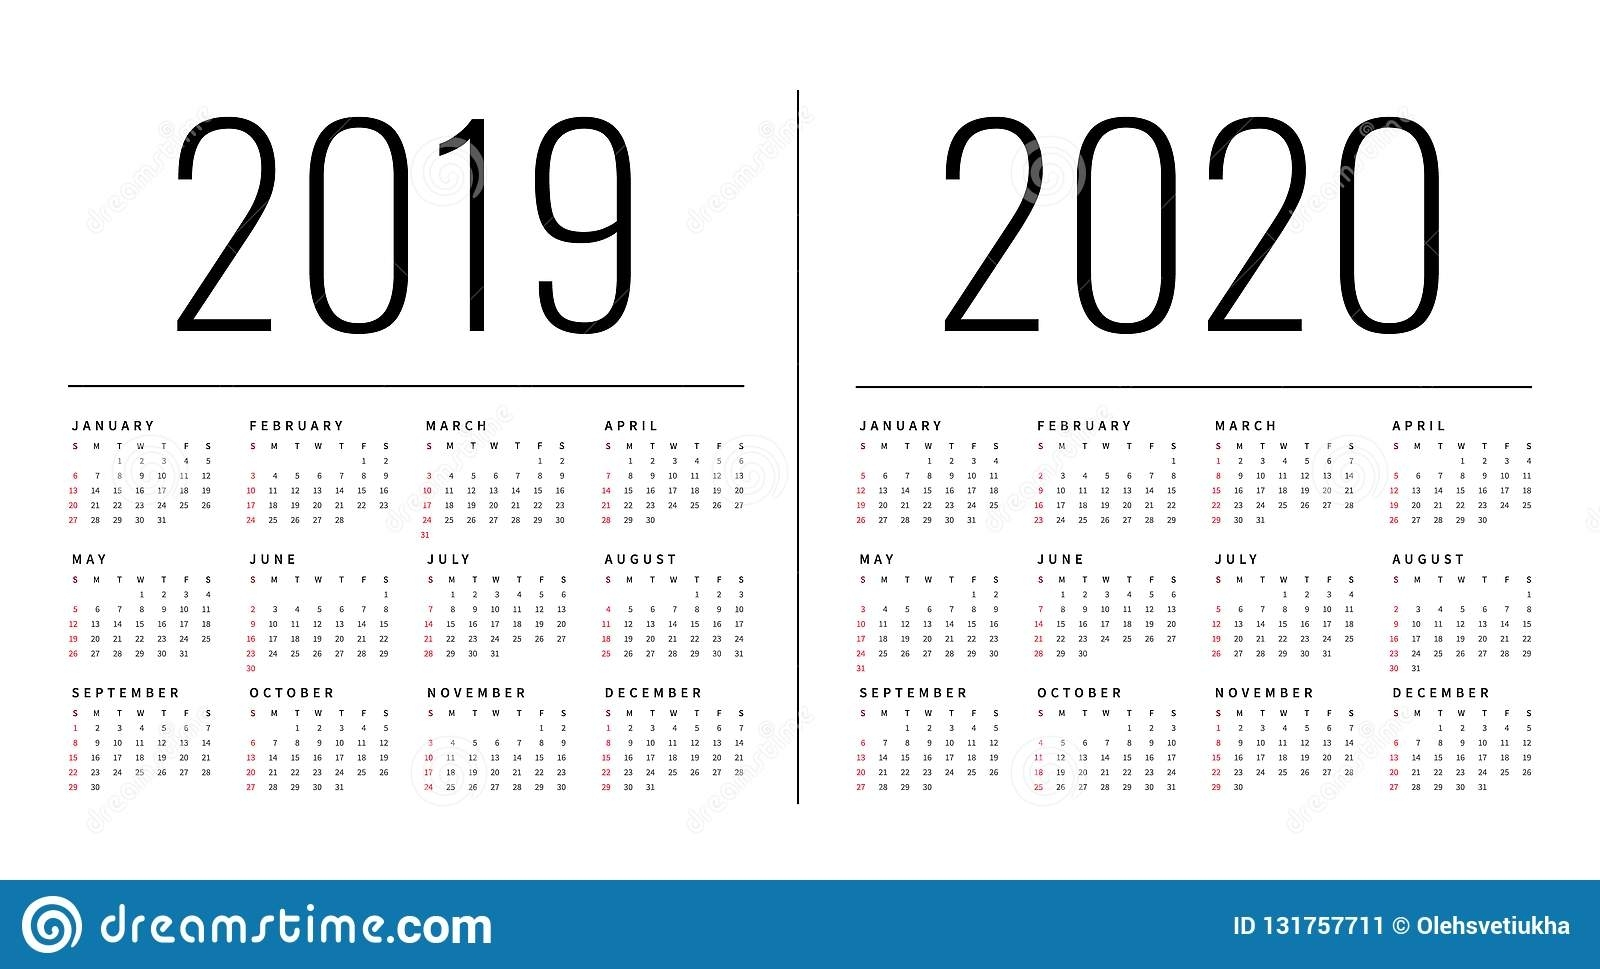 Mockup Simple Calendar Layout For 2019 And 2020 Years. Week Starts inside 2019/2020 Calendars Starting On Monday